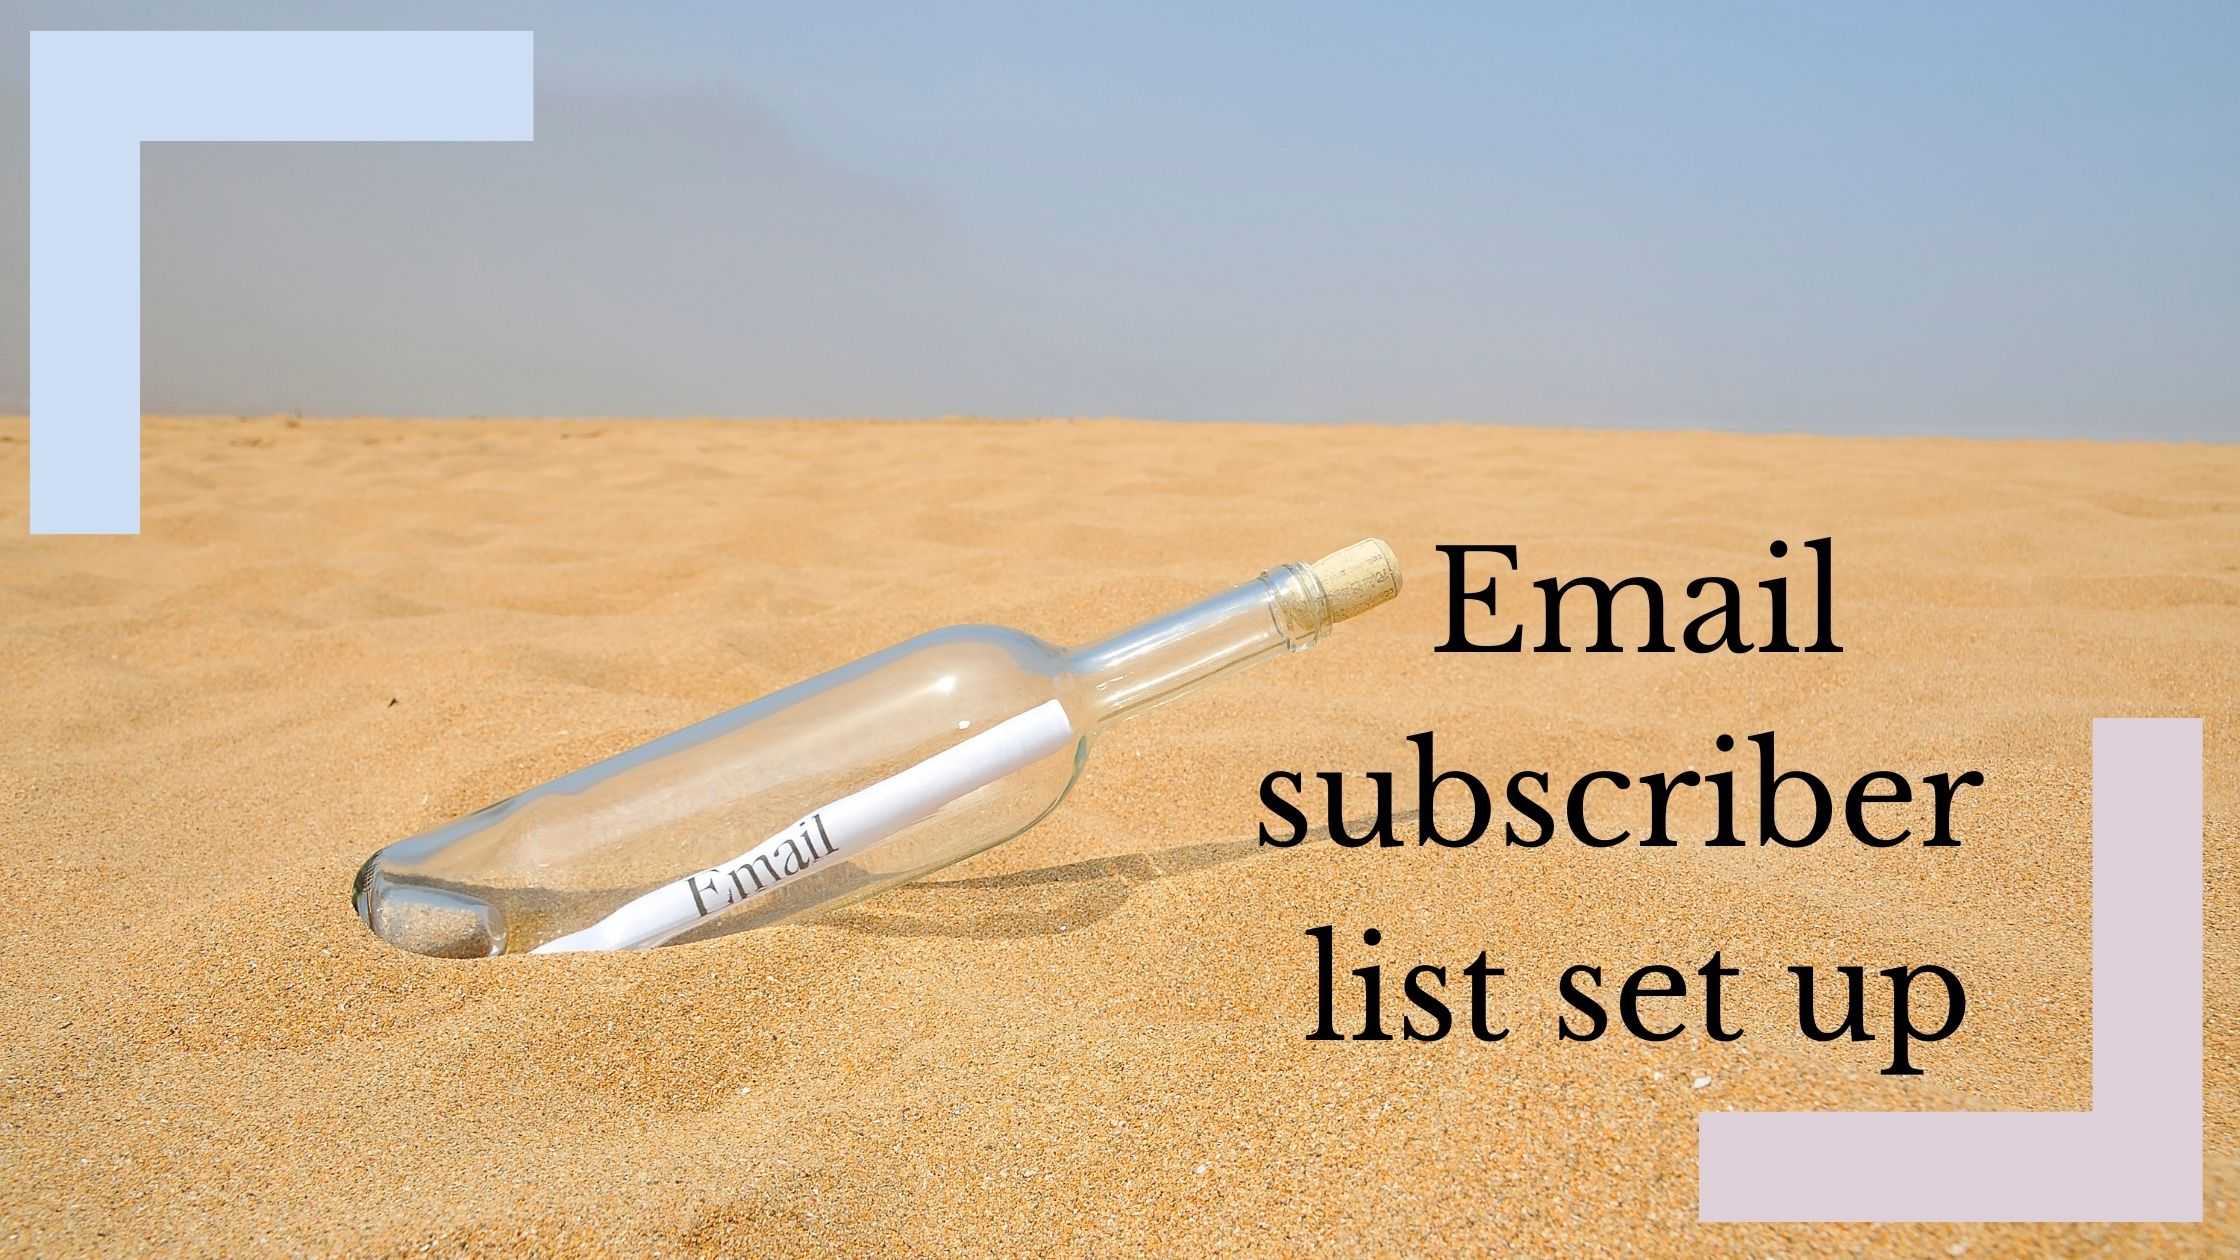 4 simple steps to set up an email subscriber list